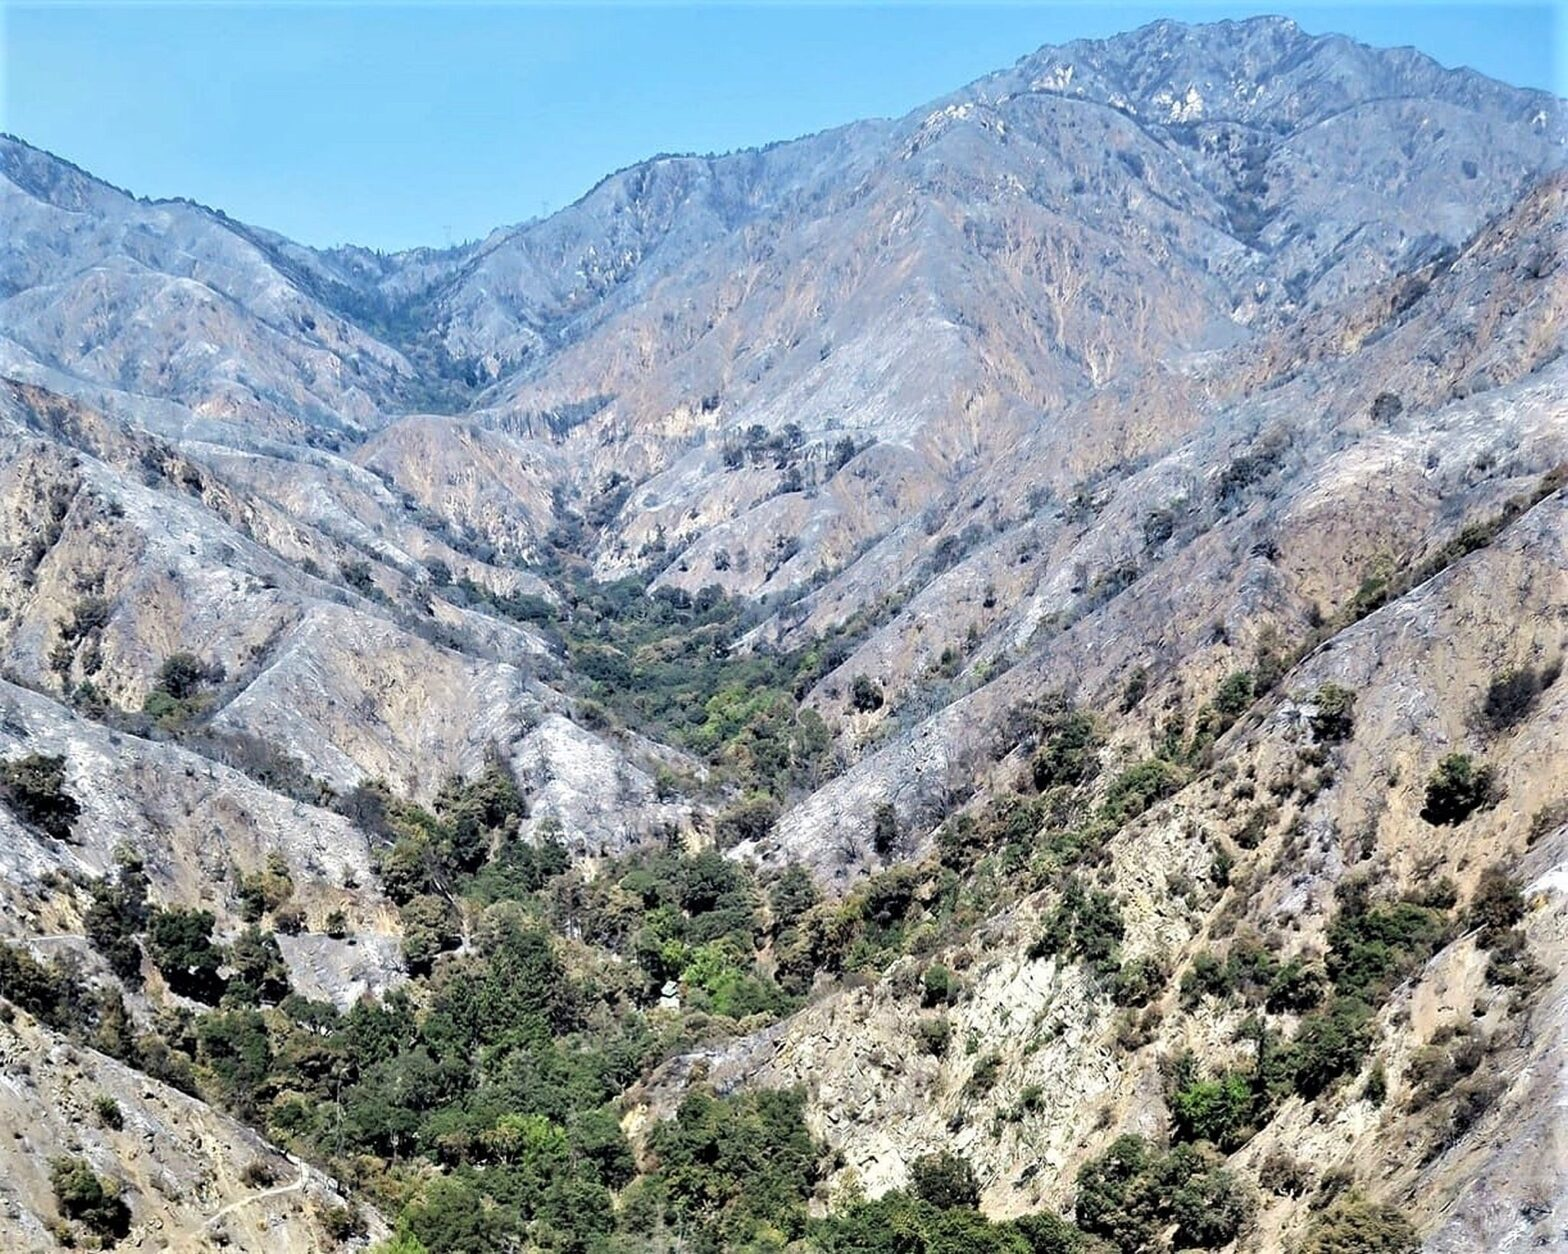 Big Santa Anita Canyon after the Bobcat Fire 2020